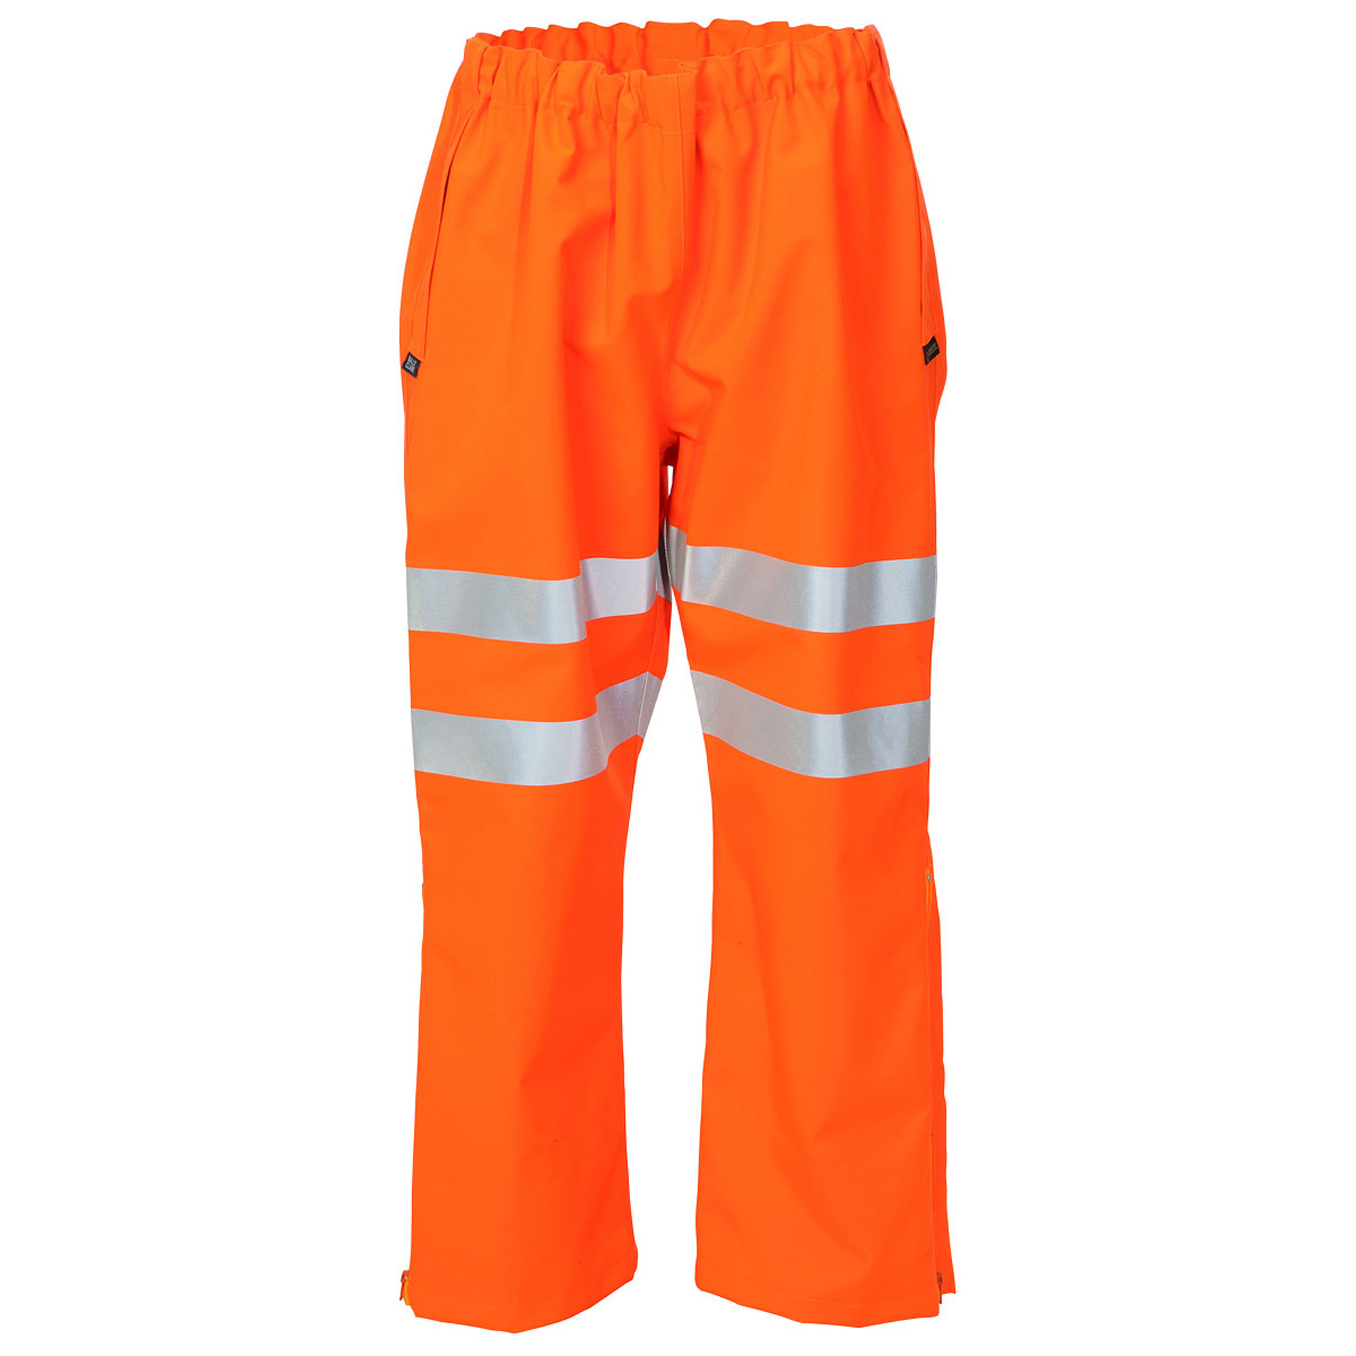 B-Seen Gore-Tex Over Trousers Foul Weather 3XL Orange Ref GTHV160ORXXXL *Up to 3 Day Leadtime*